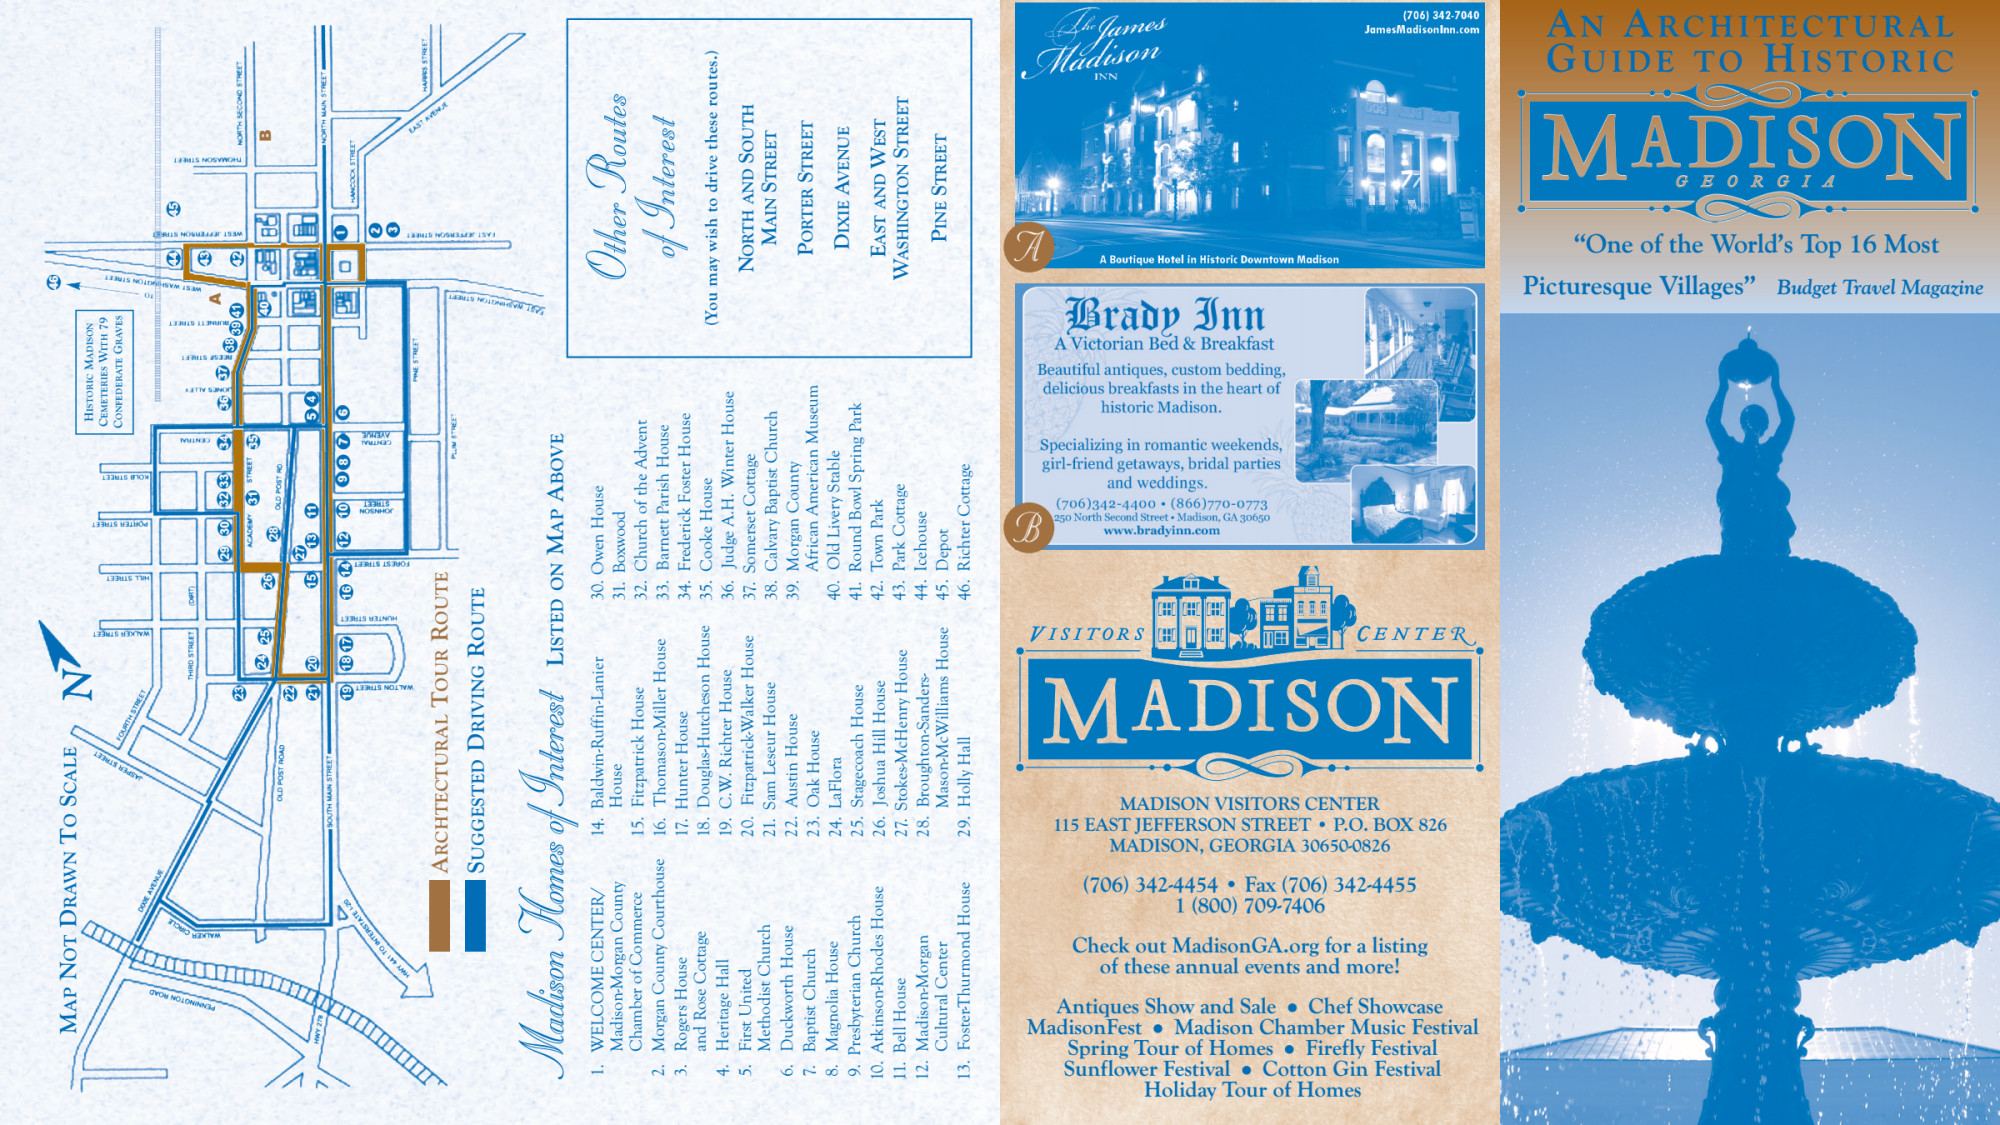 Madison Self-Guided Architectural Walking Tour